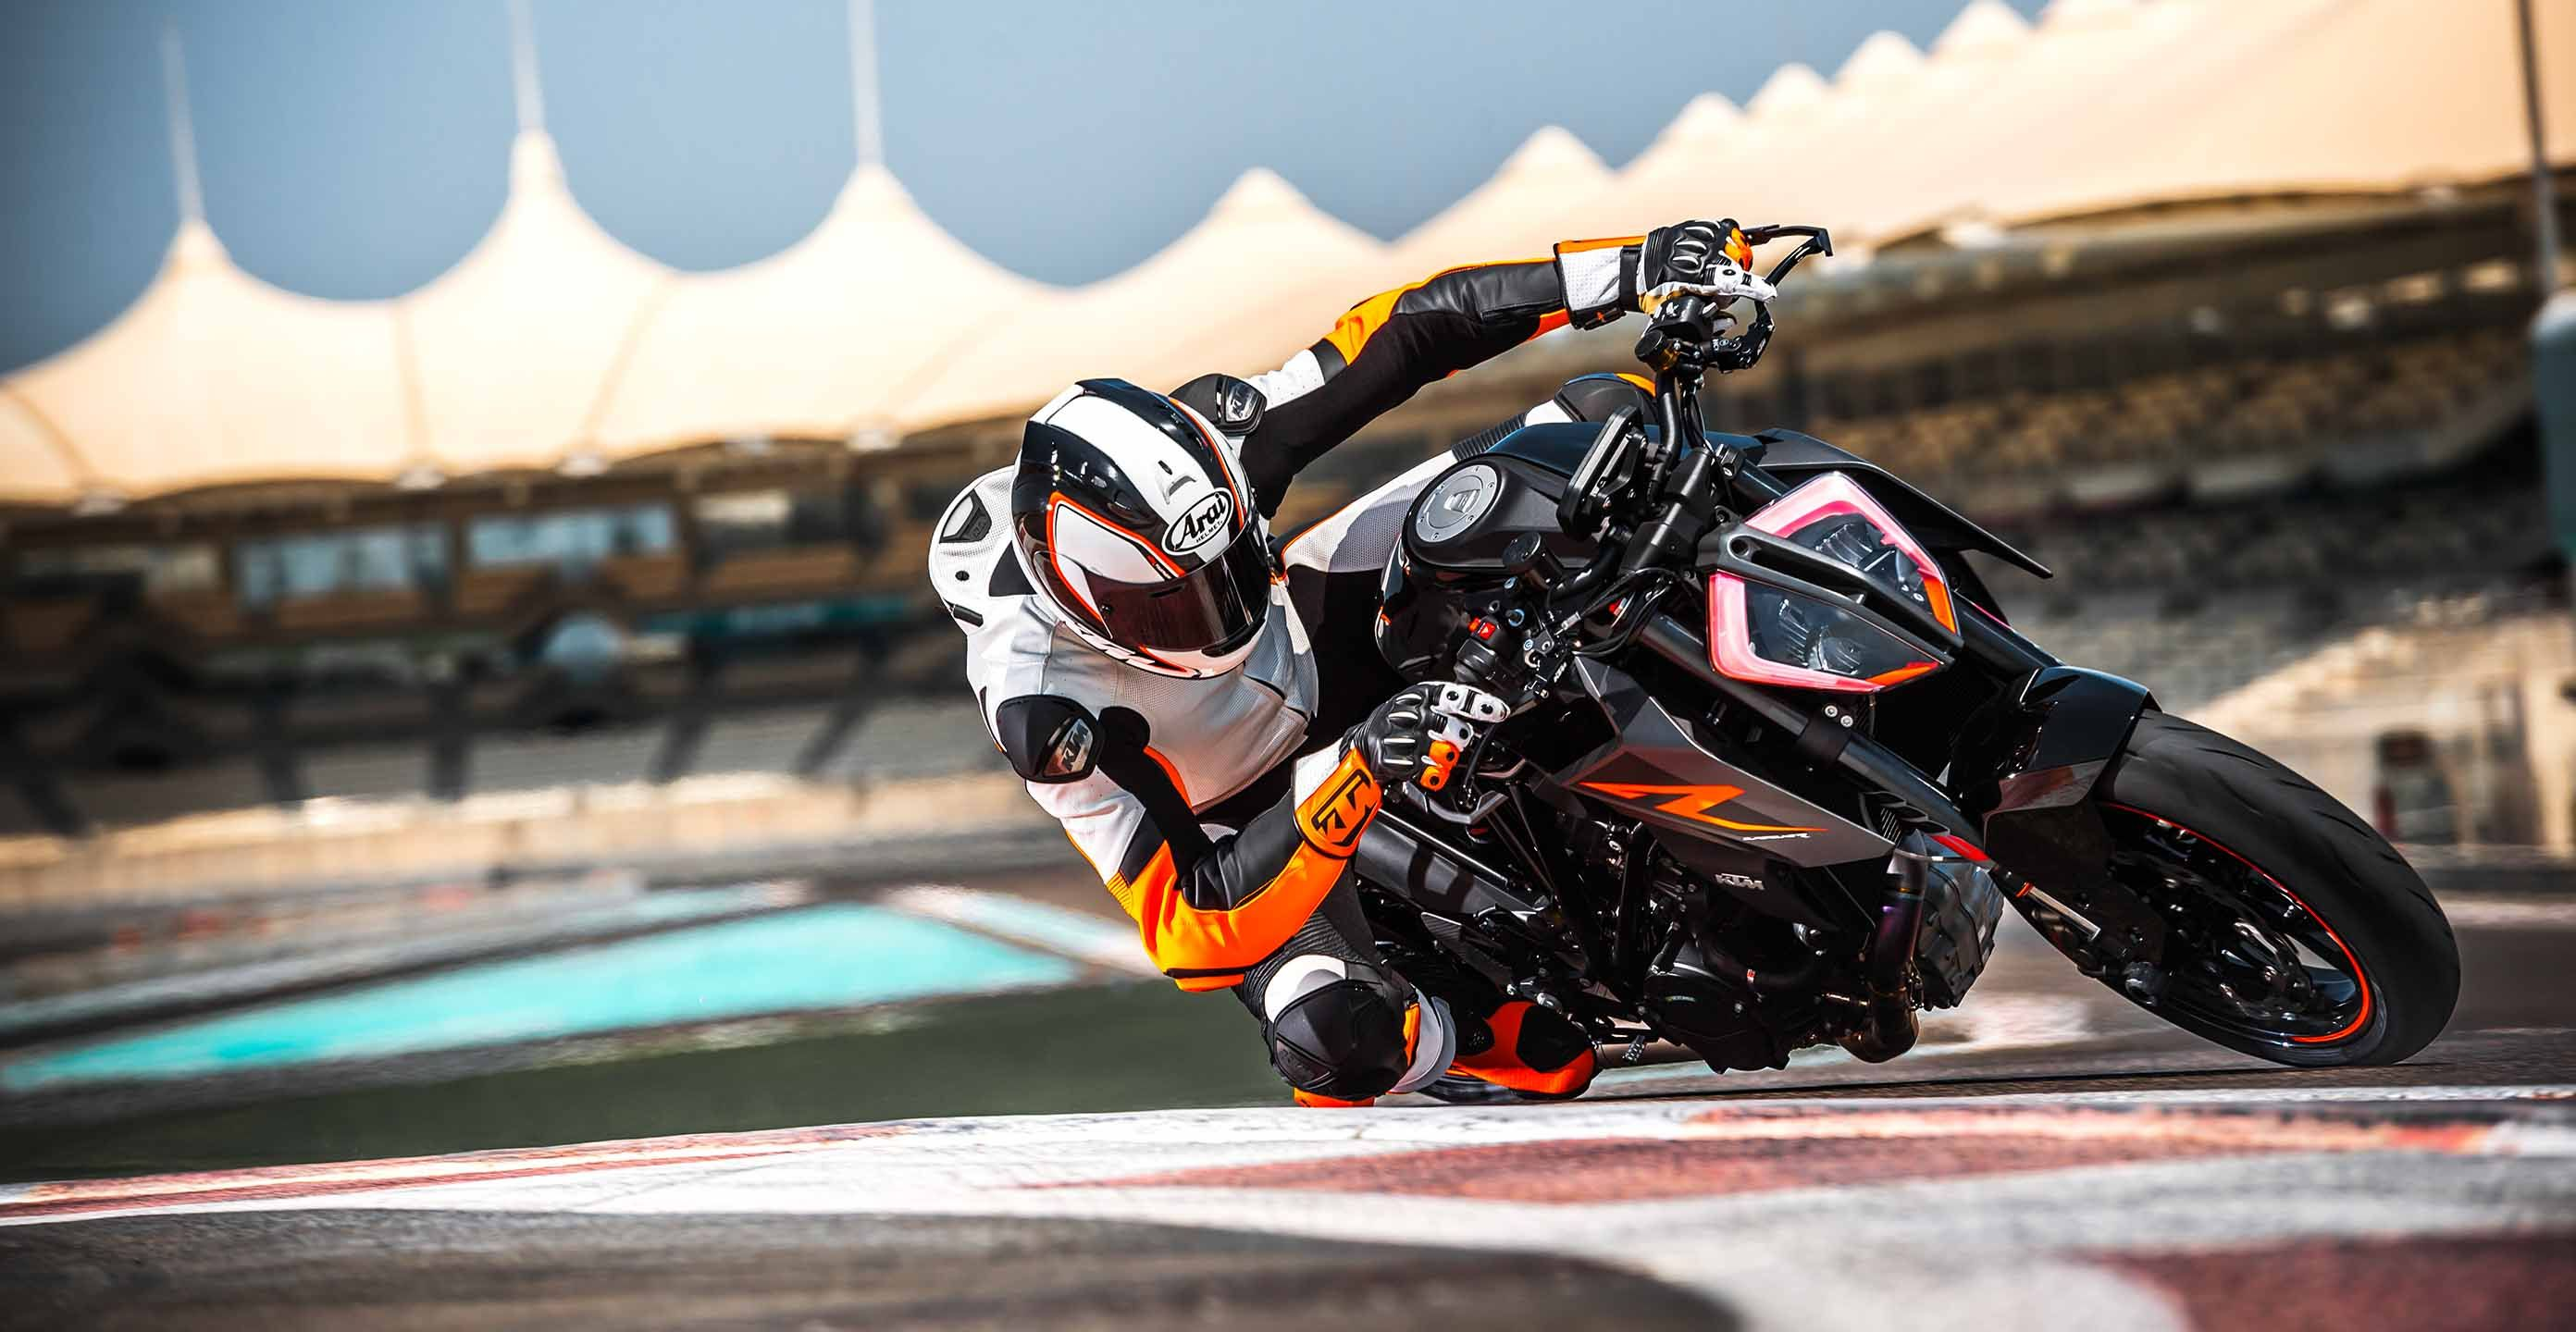 More Power And Performance For Ktm S 1290 Super Duke R And 390 Duke Revzilla Ktm Ktm Super Duke Futuristic Motorcycle